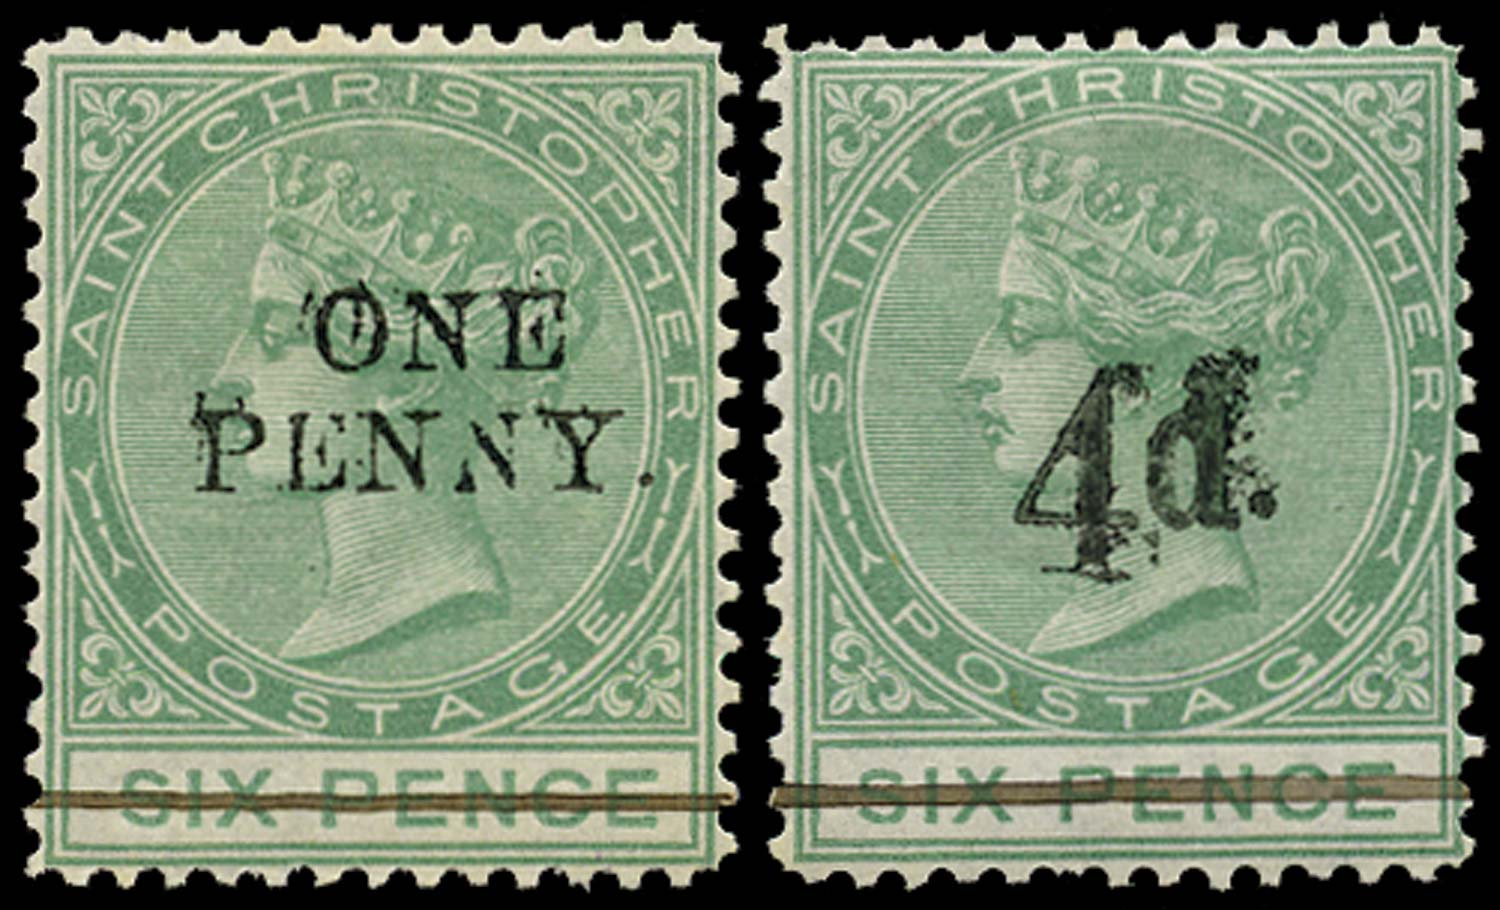 ST CHRISTOPHER 1886  SG24/25 Mint 1d on 6d green, 4d on 6d green